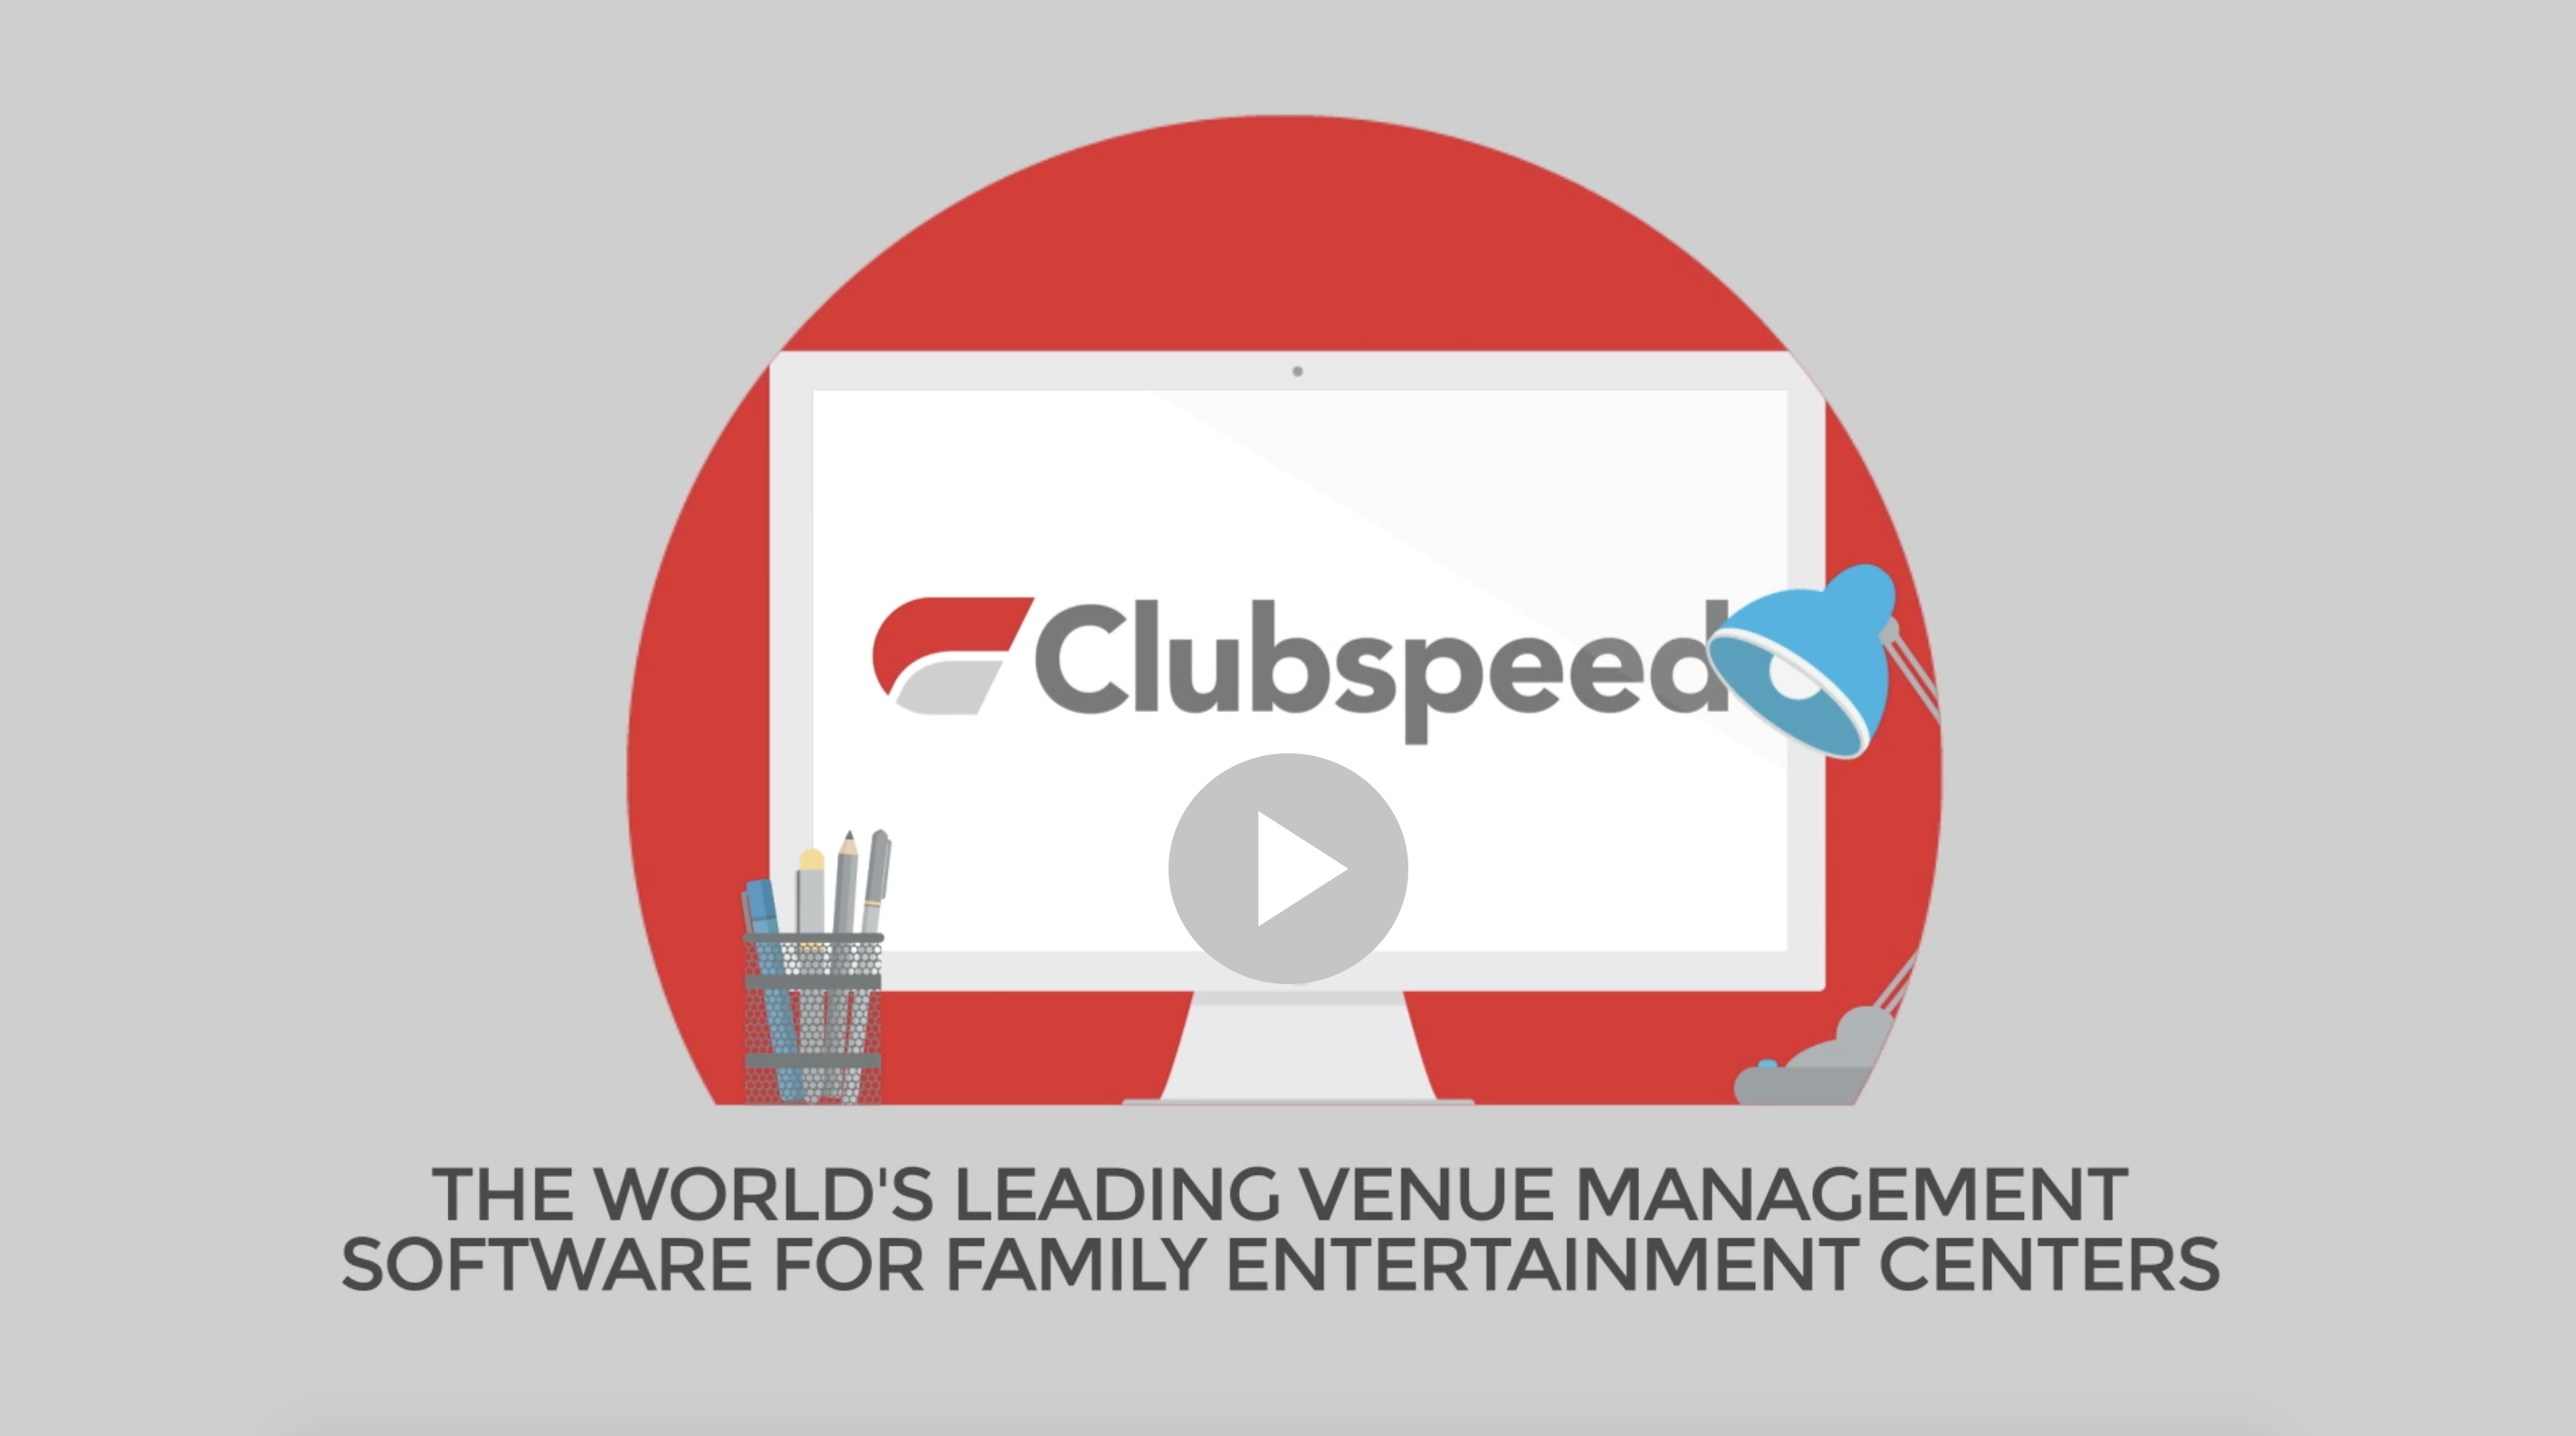 About Clubspeed Video